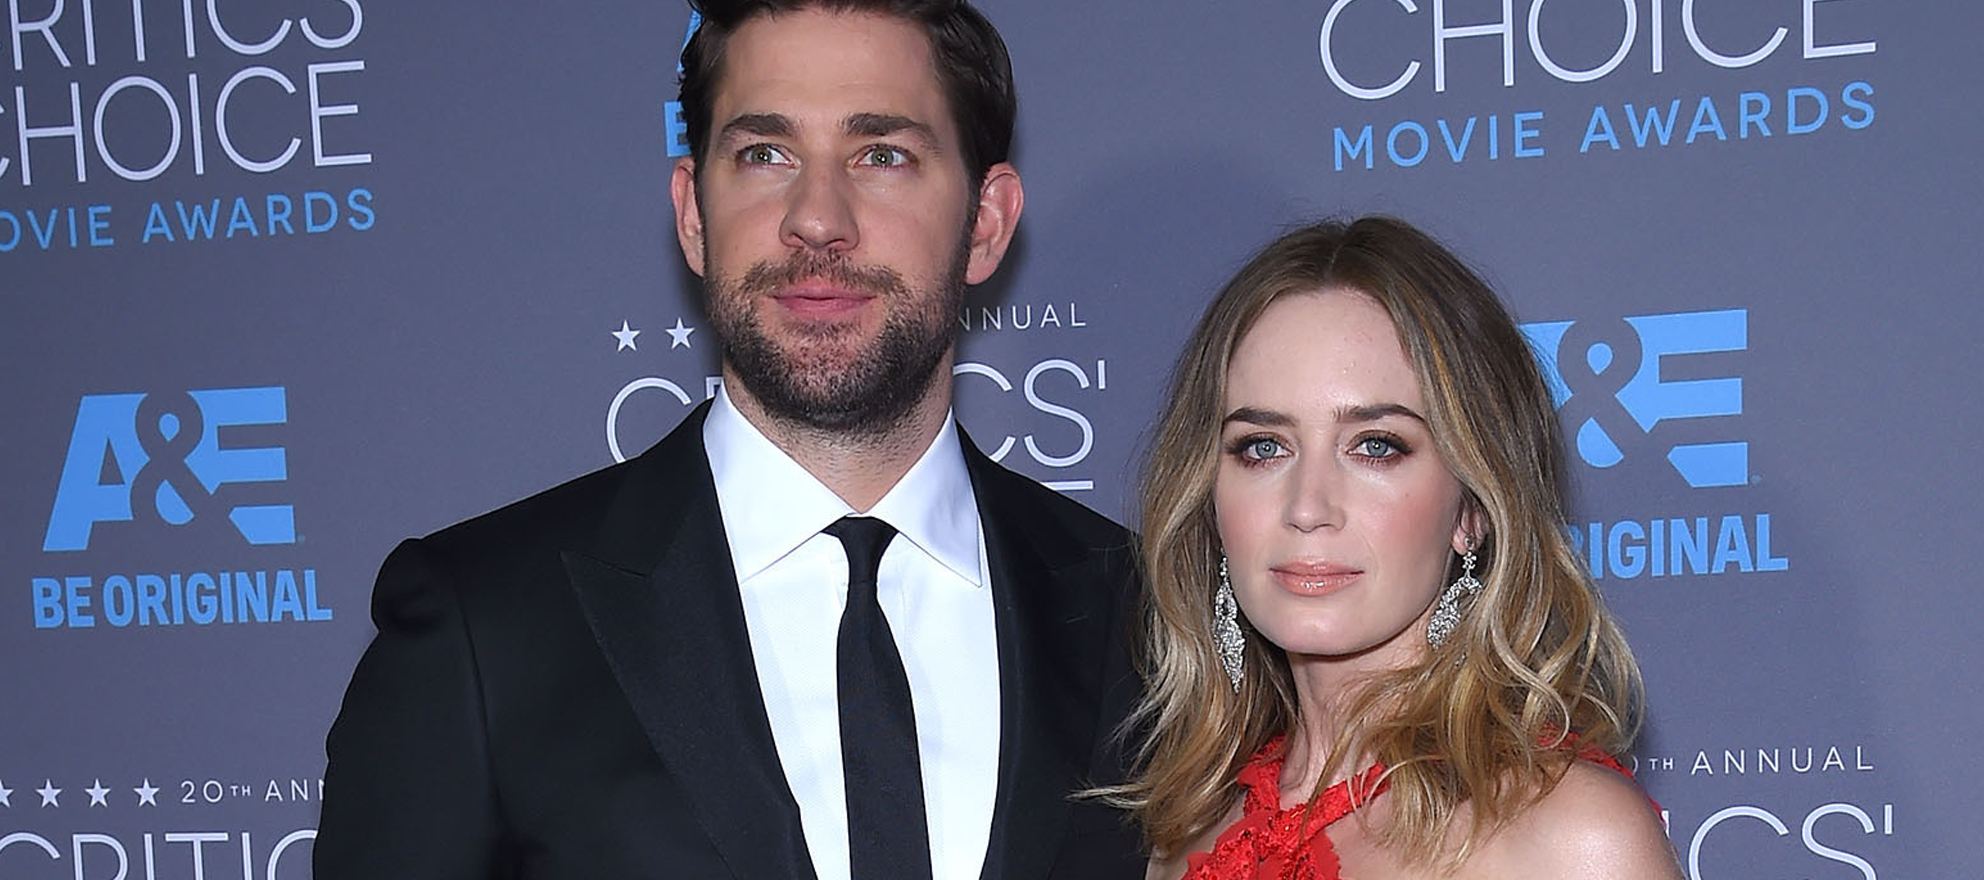 Celebrity listing: John Krasinski and Emily Blunt list home